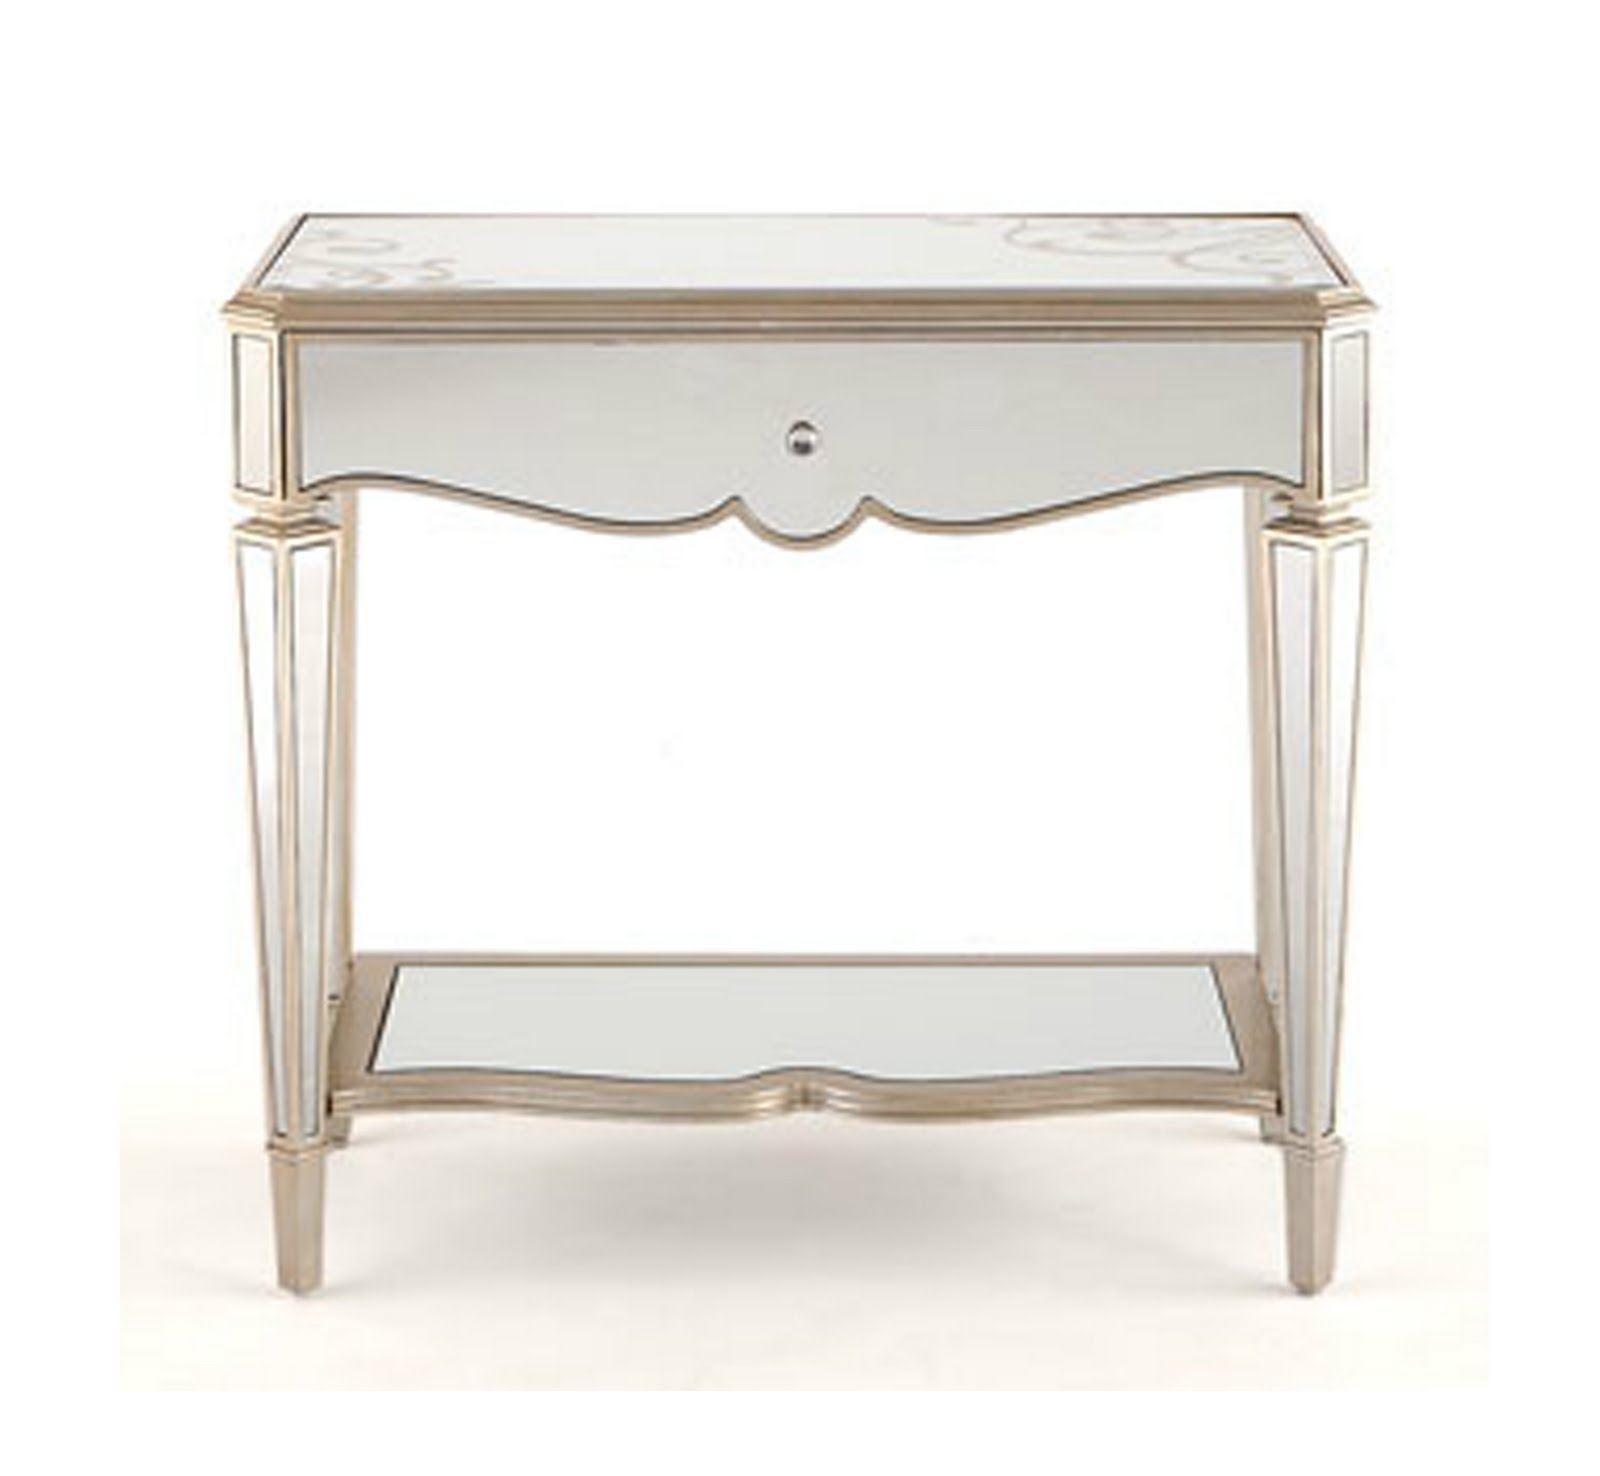 Thrifty Thursday Mirrored Bedside Tables